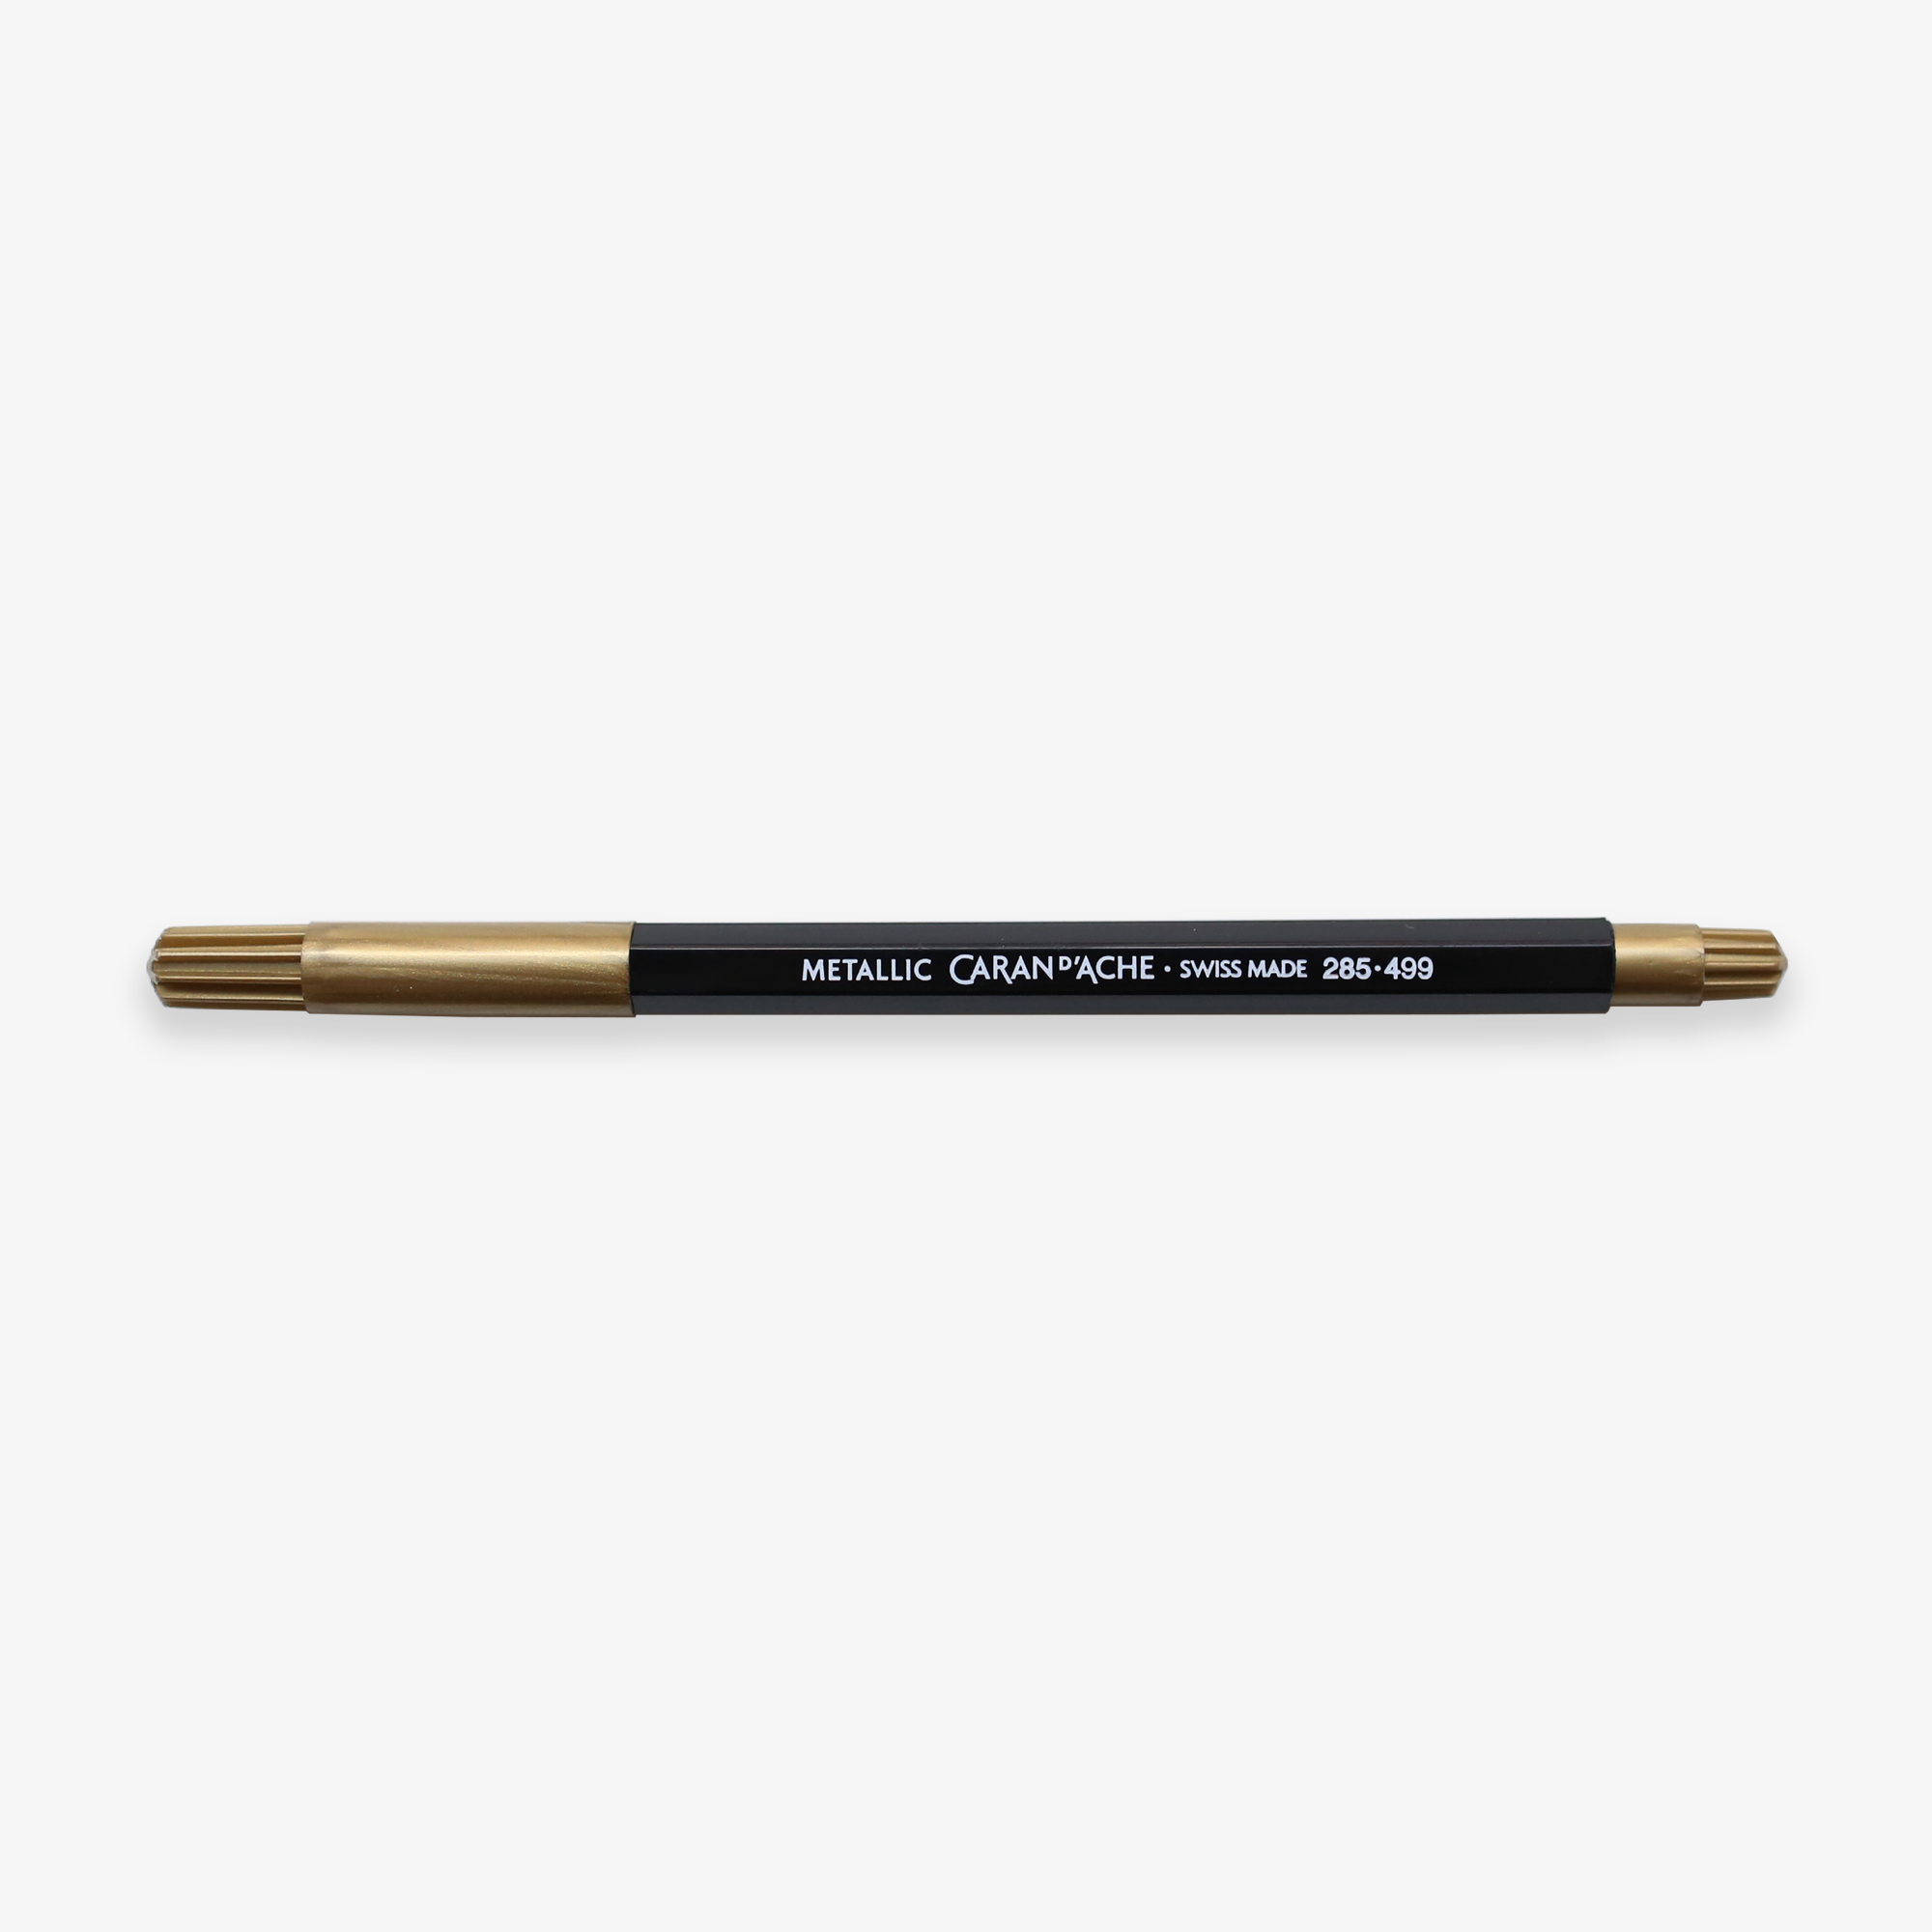 FIBRALO BRUSH MARKER PEN METALLIC // GOLD